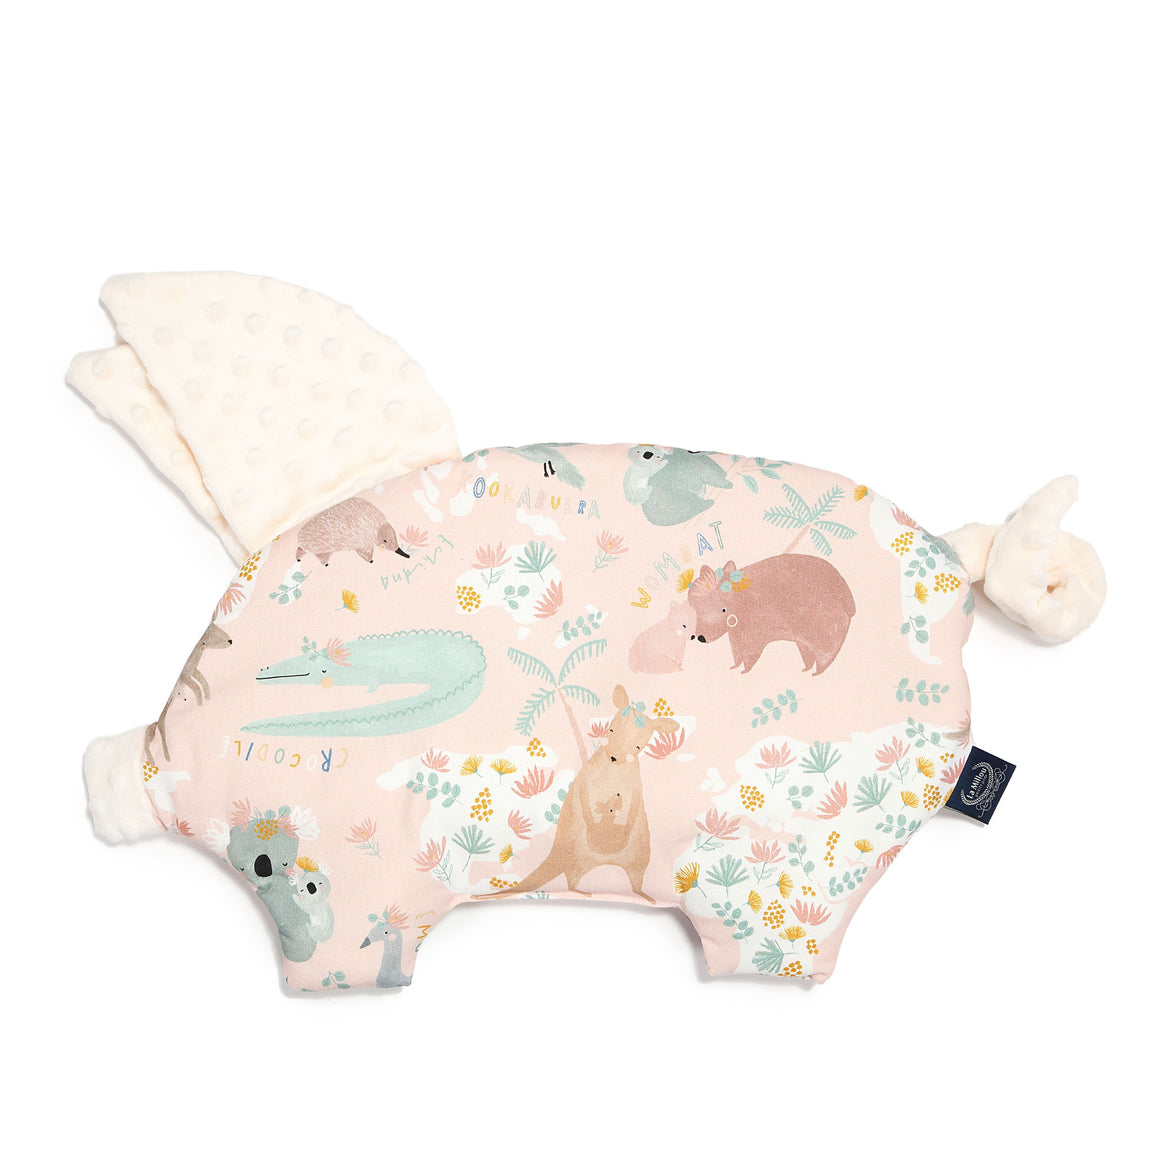 SLEEPY PIG baby pillow - Dundee & Friends Pink | Ecru